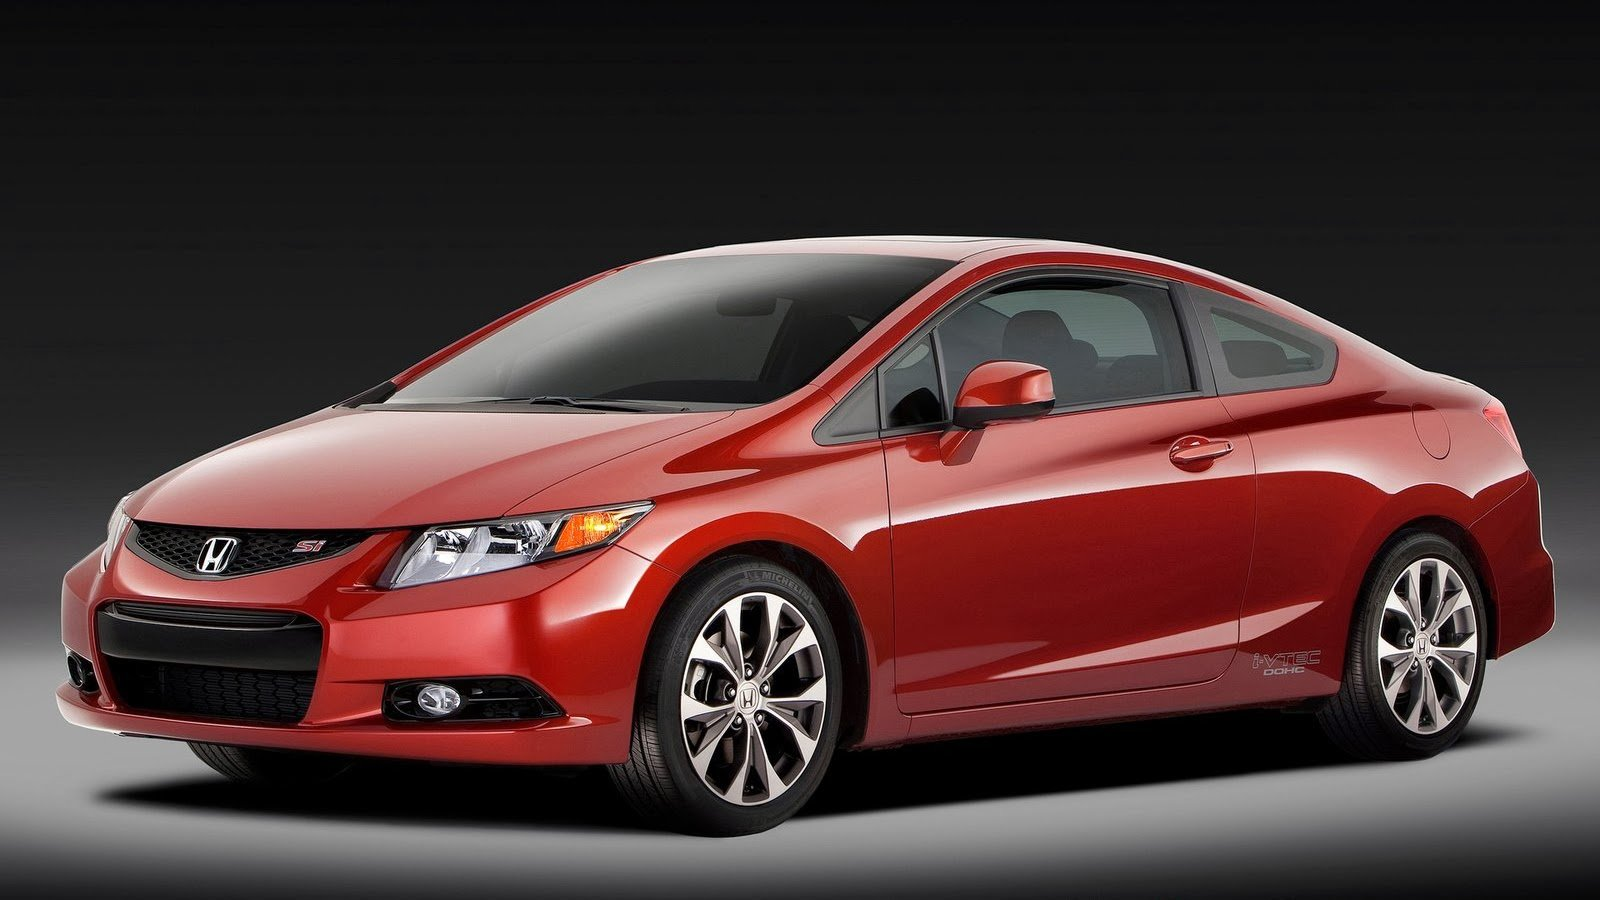 Latest One Hundred Cars New Car Honda Civic 2014 Free Download